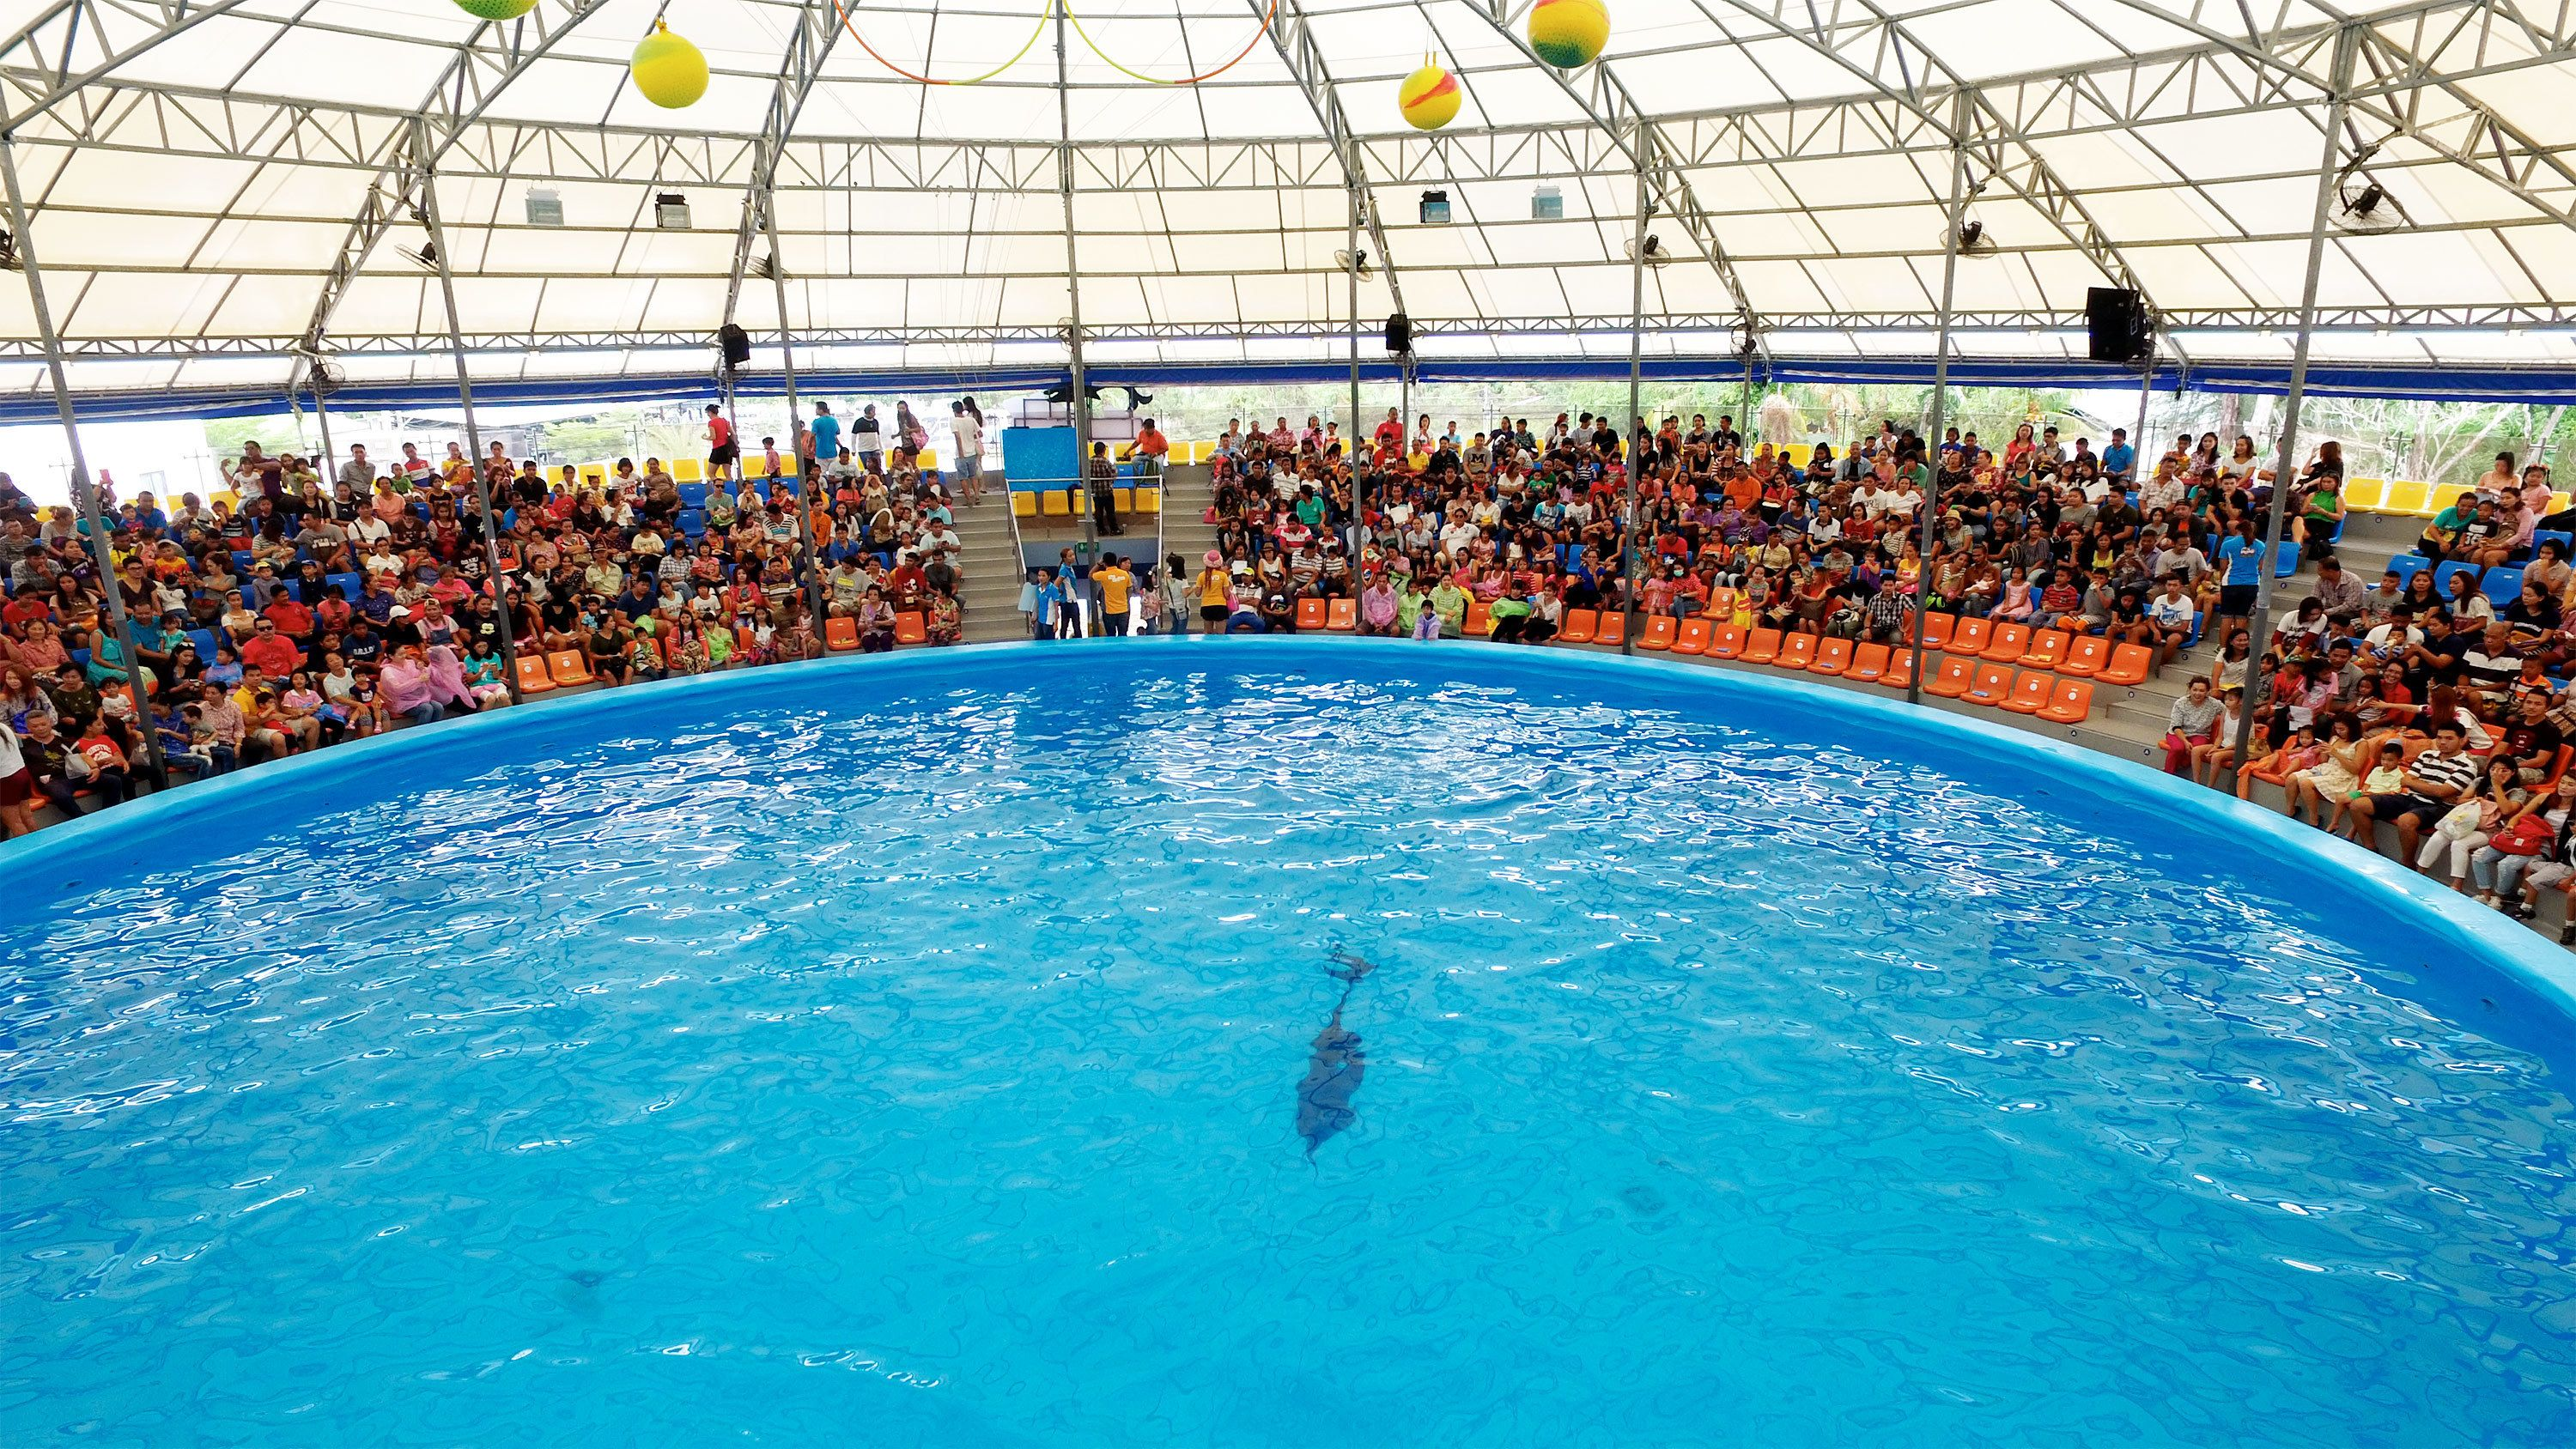 View of the Dolphin Show in Phuket